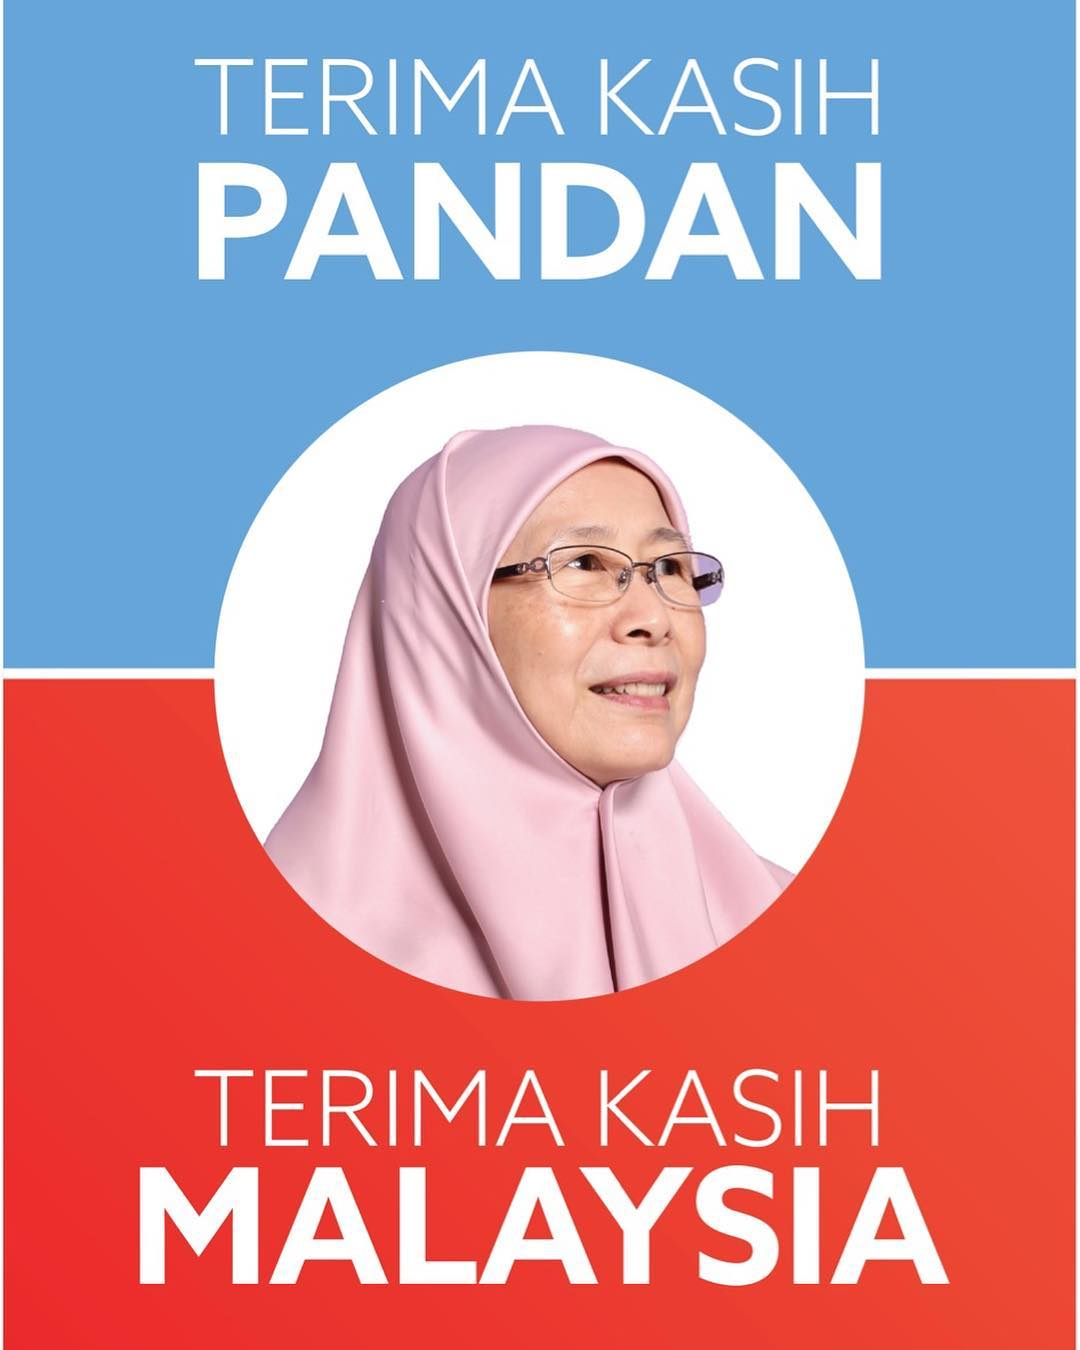 10 Wan Azizah Facts, For She's Malaysia's First Female